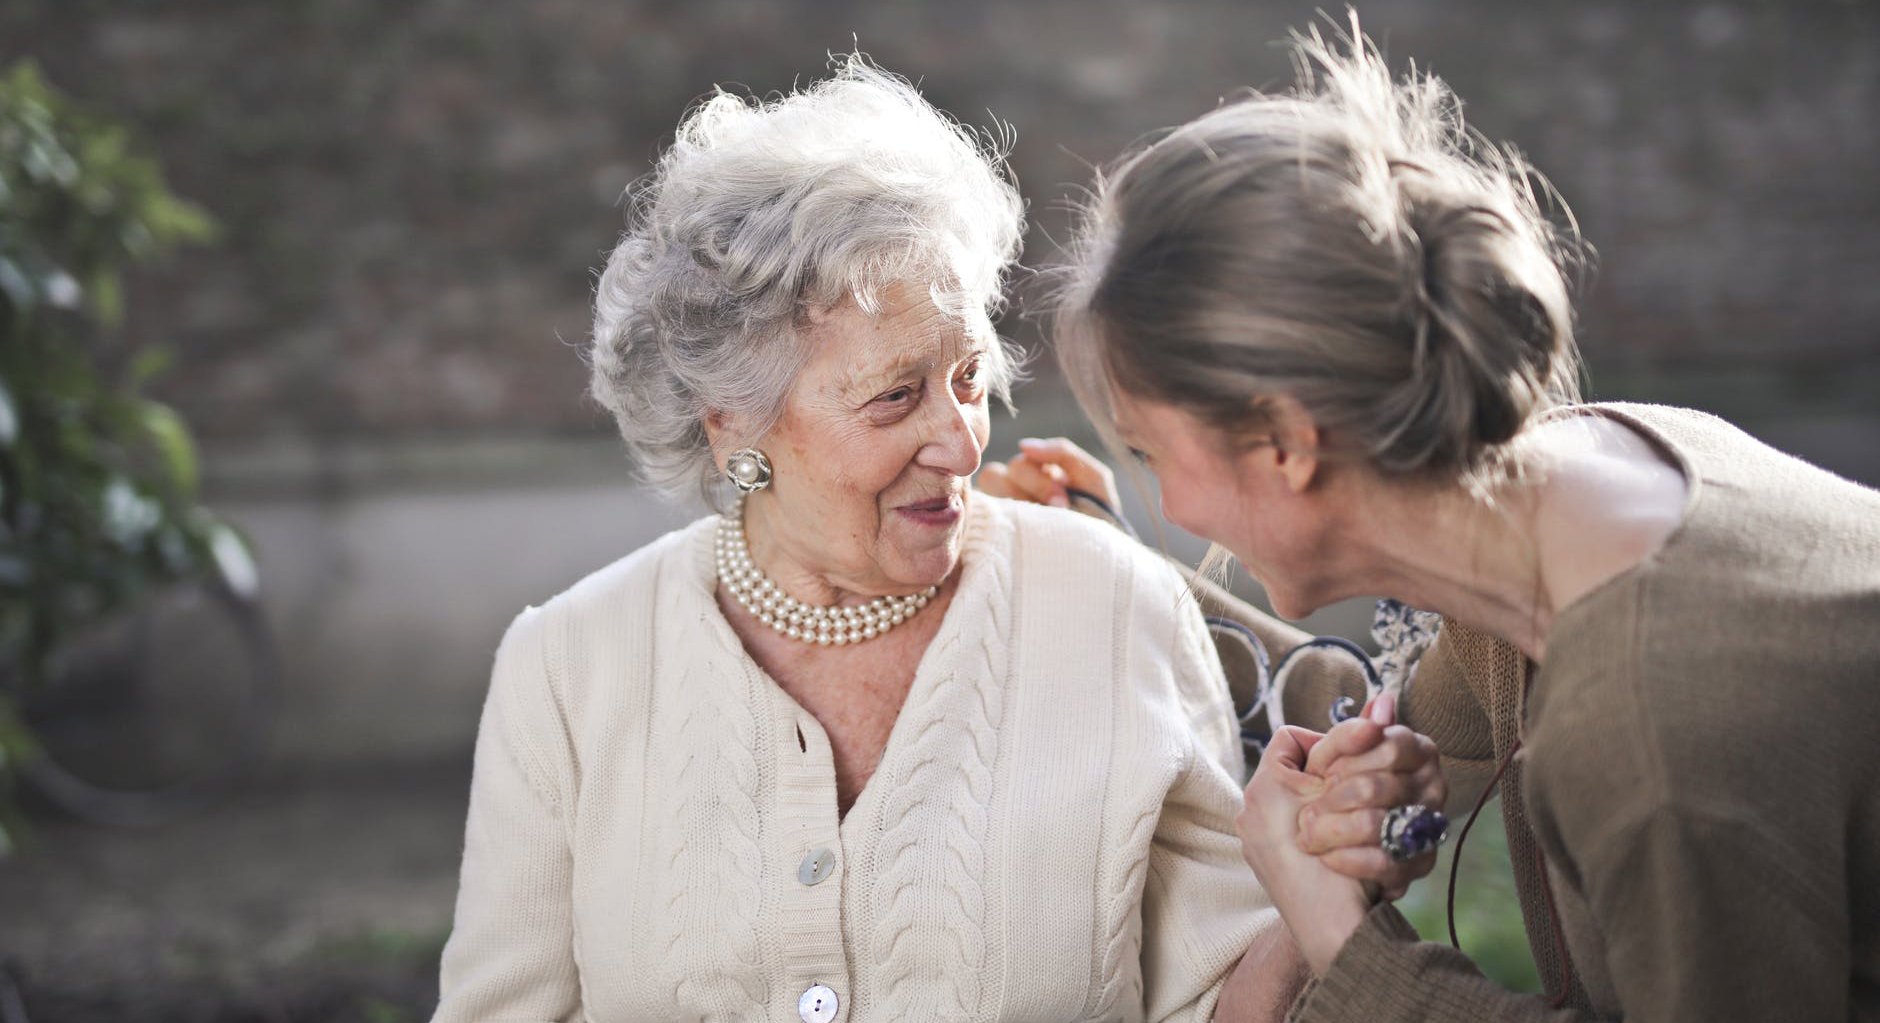 Smiling older woman holding hands with a younger woman